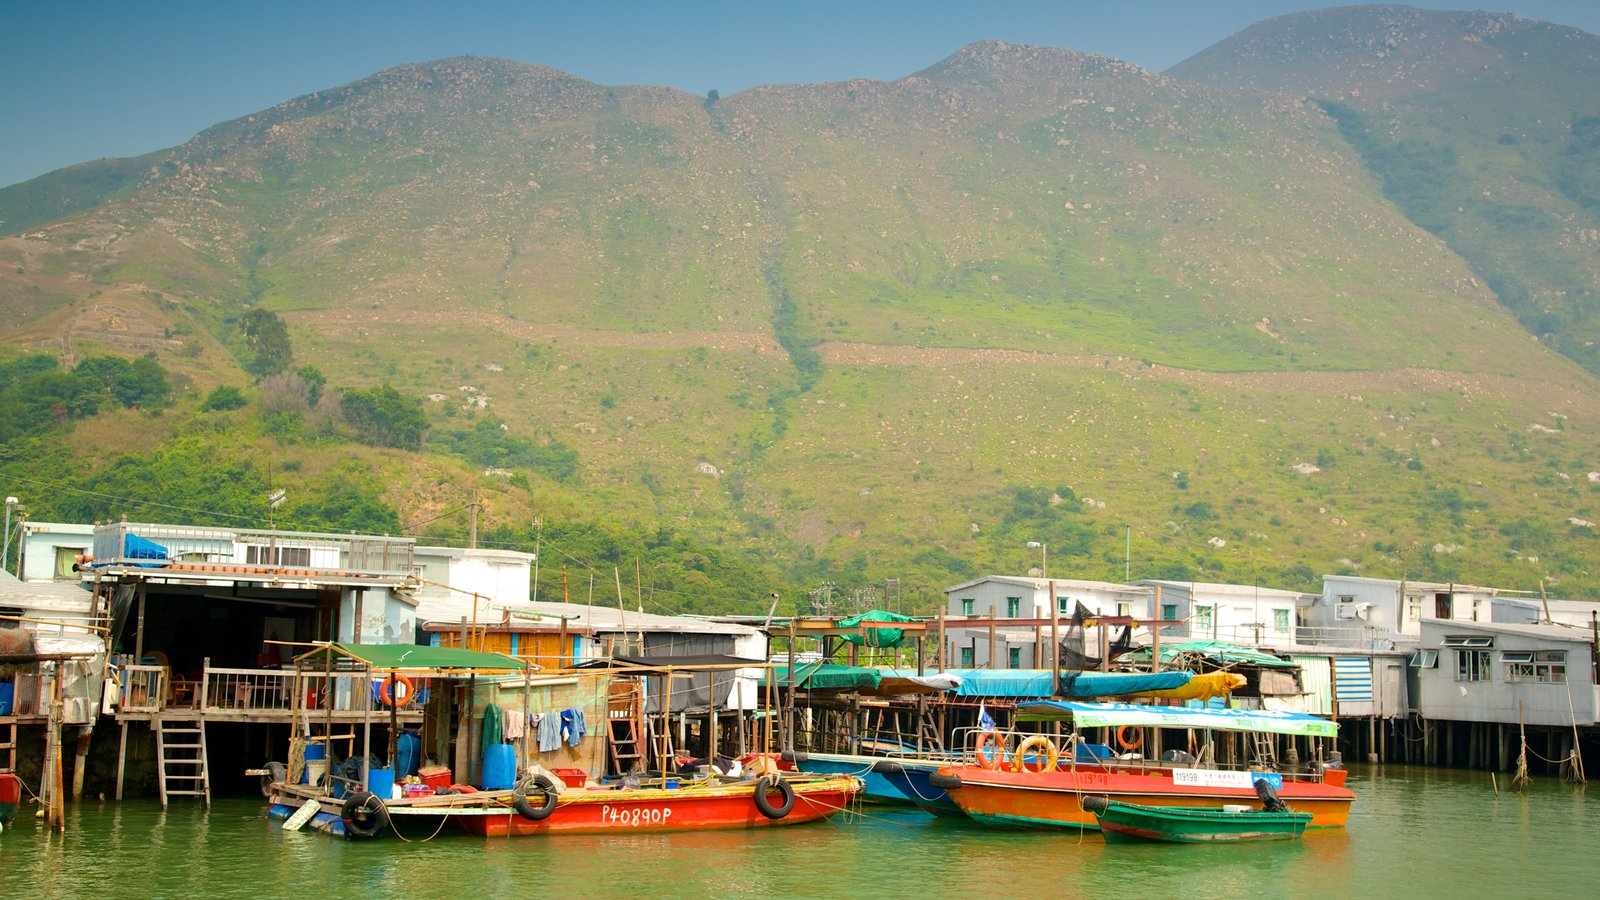 Tai O Fishing Village featuring a small town or village, a river or creek and boating